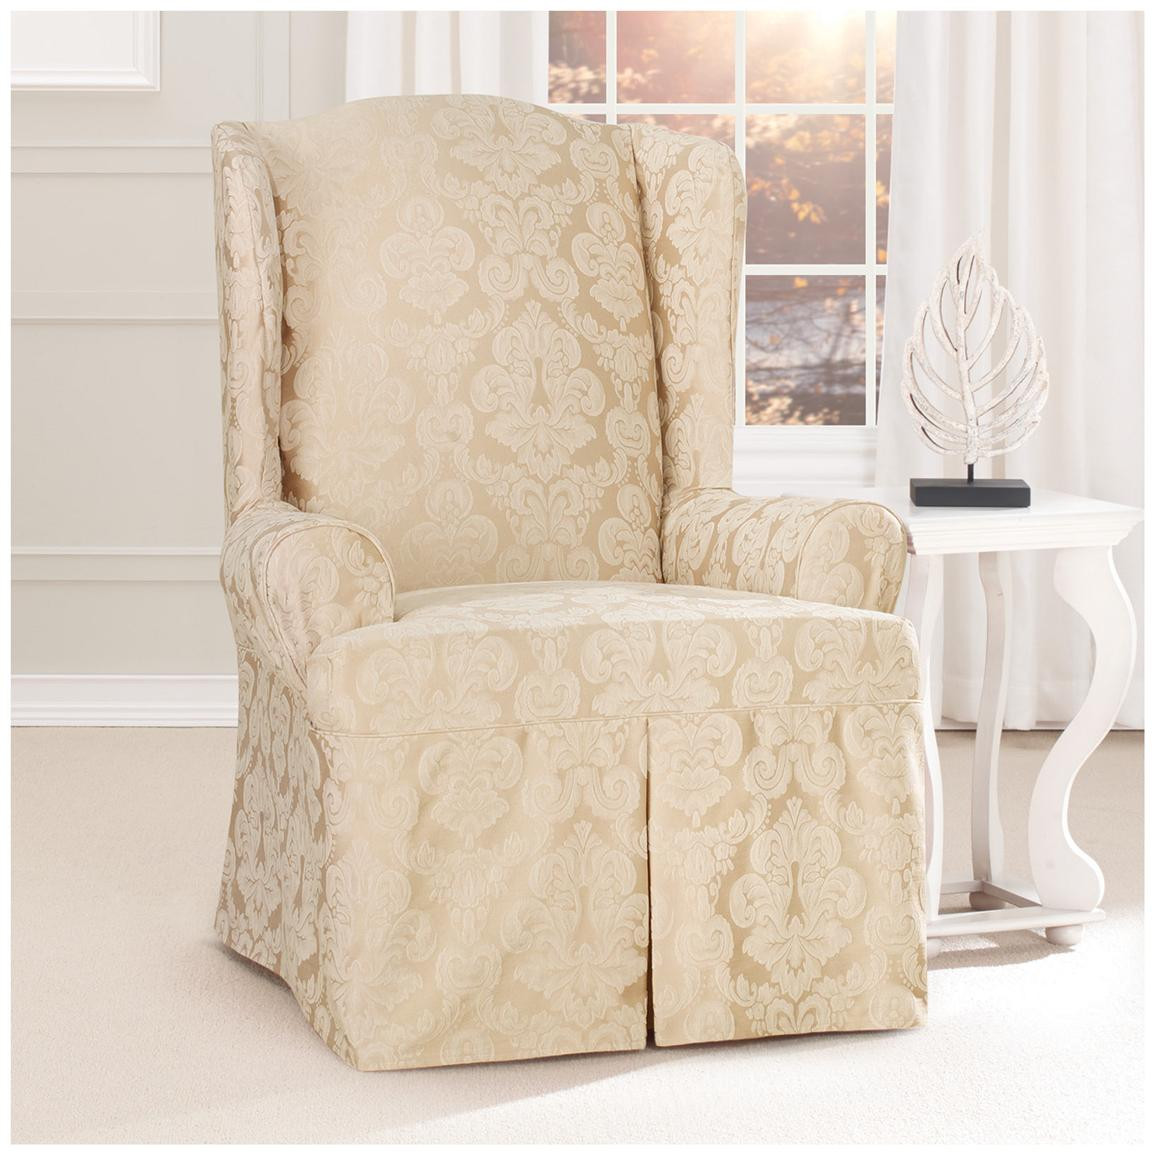 Best ideas about Surefit Chair Cover . Save or Pin Sure Fit Middleton Wing Chair Slipcover Now.